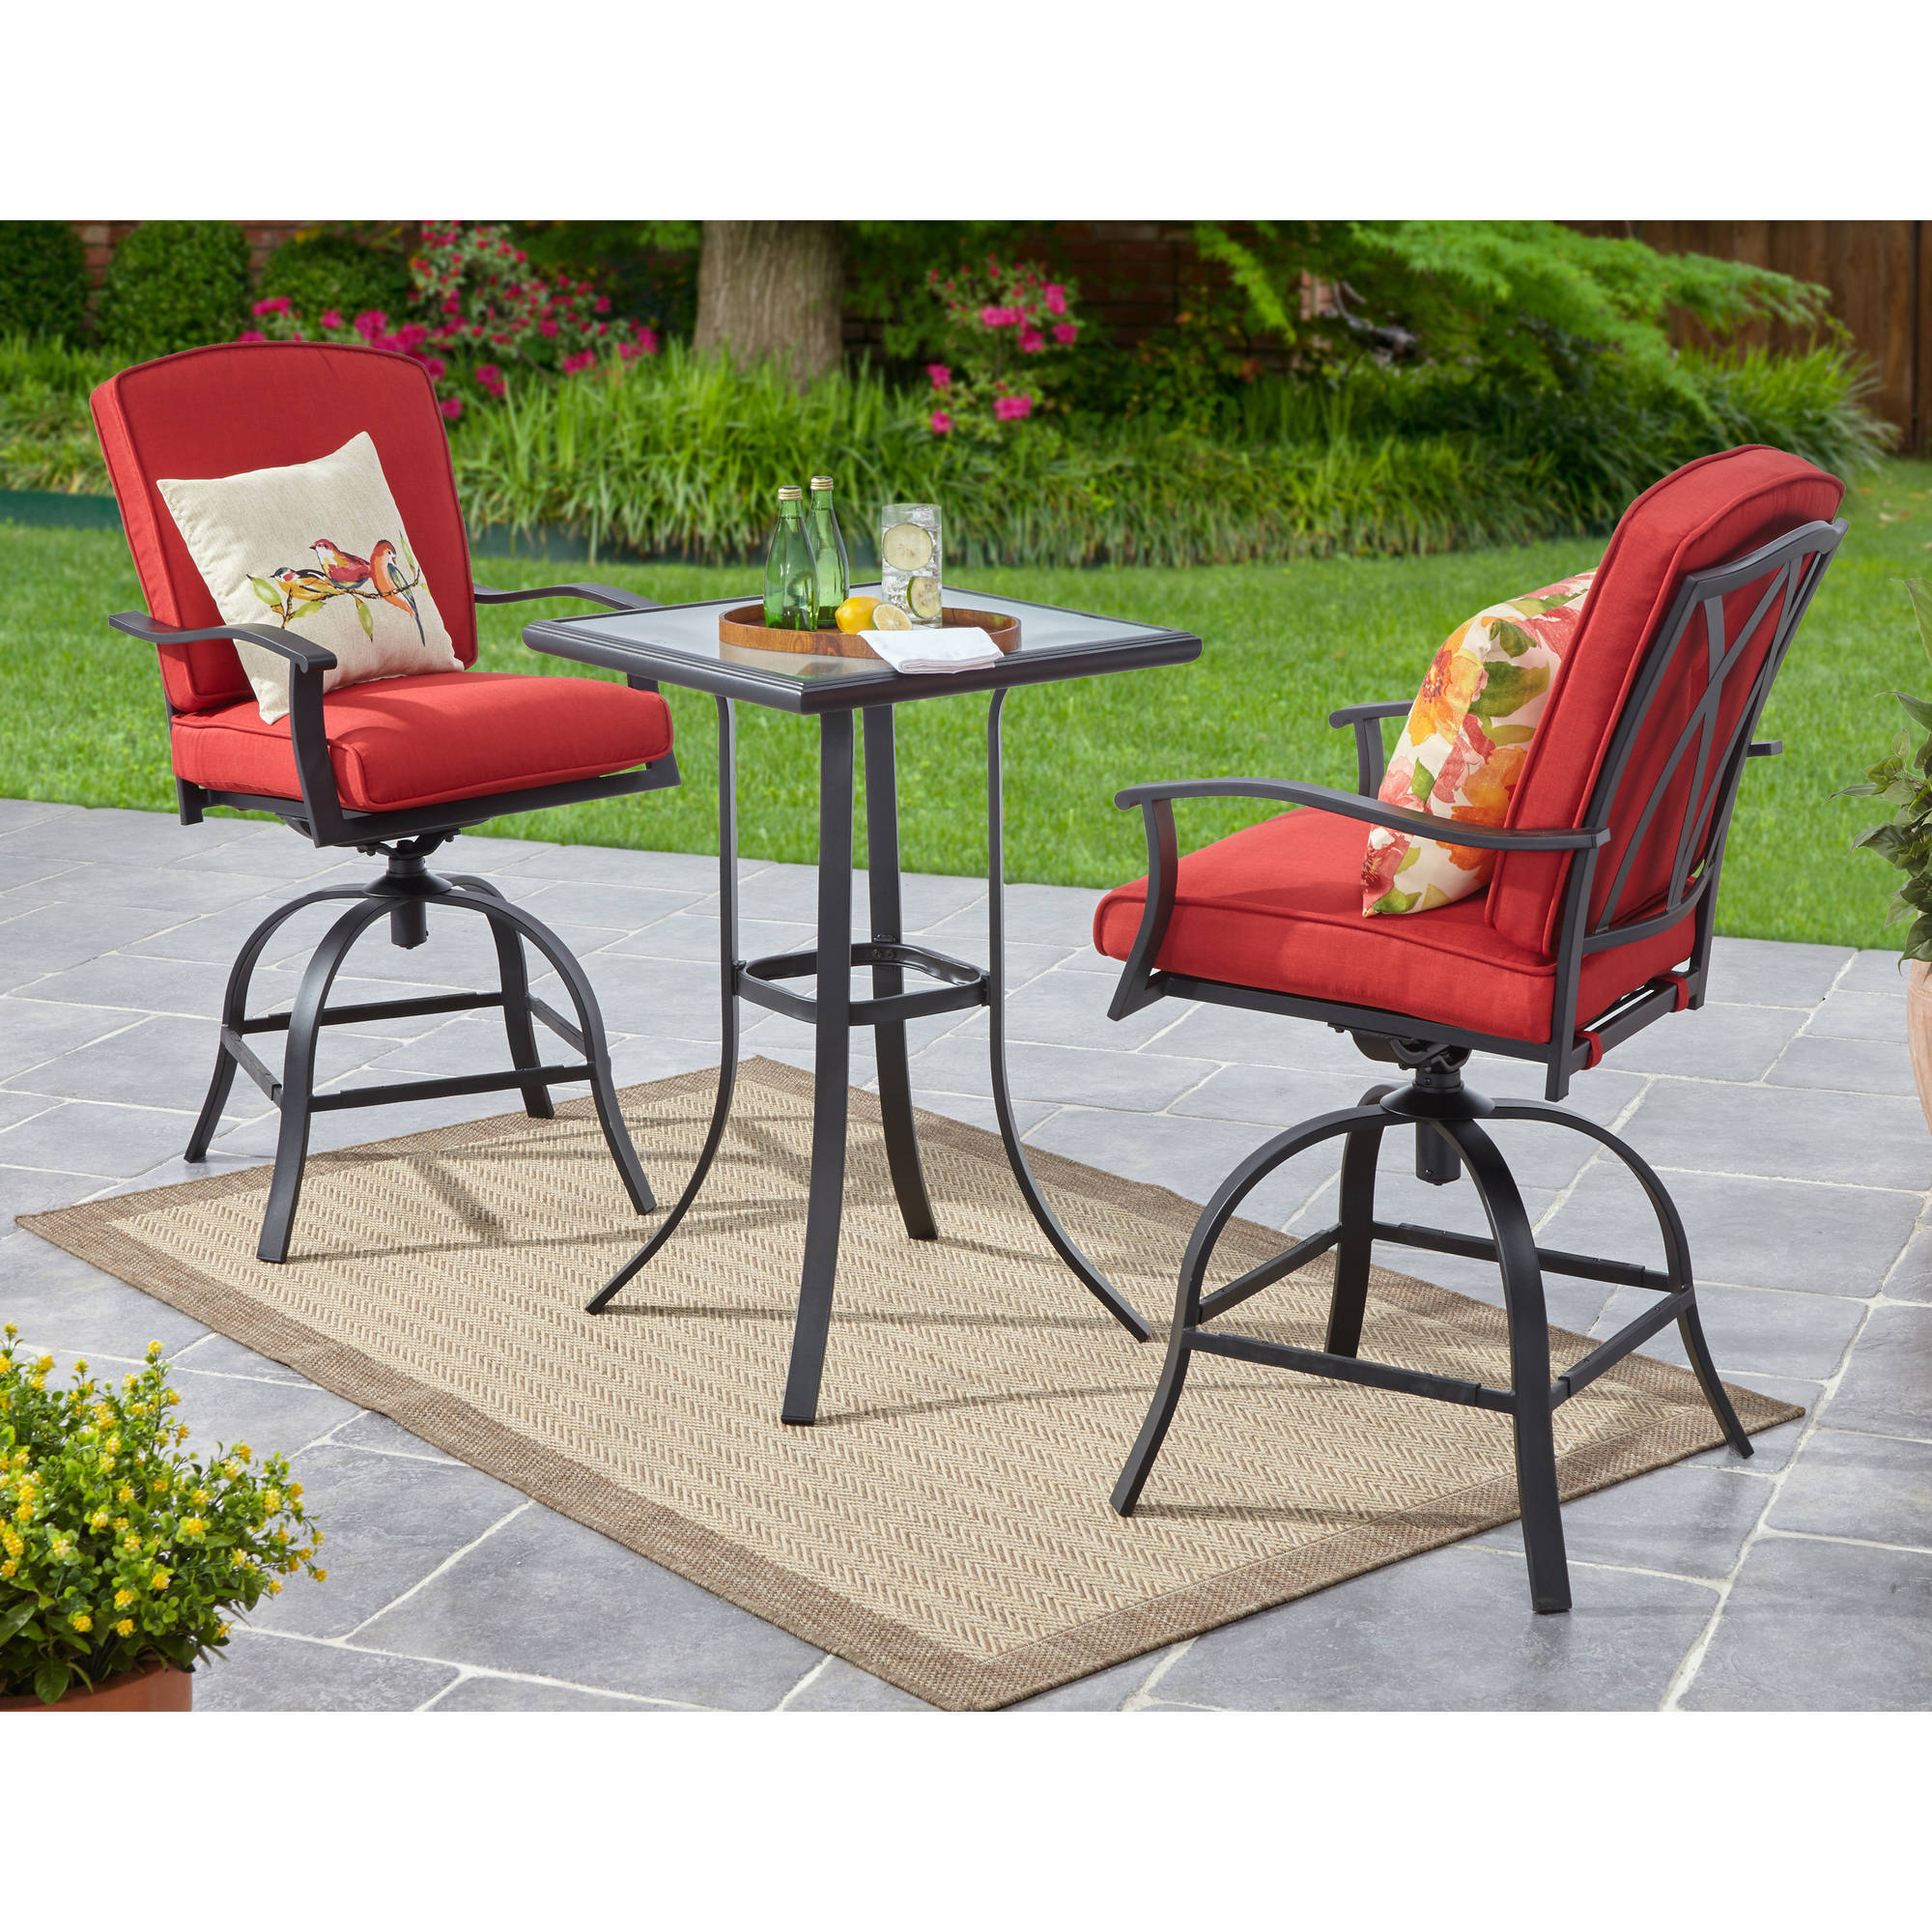 Mainstays Belden Park 3pc Swivel High Bistro Set,